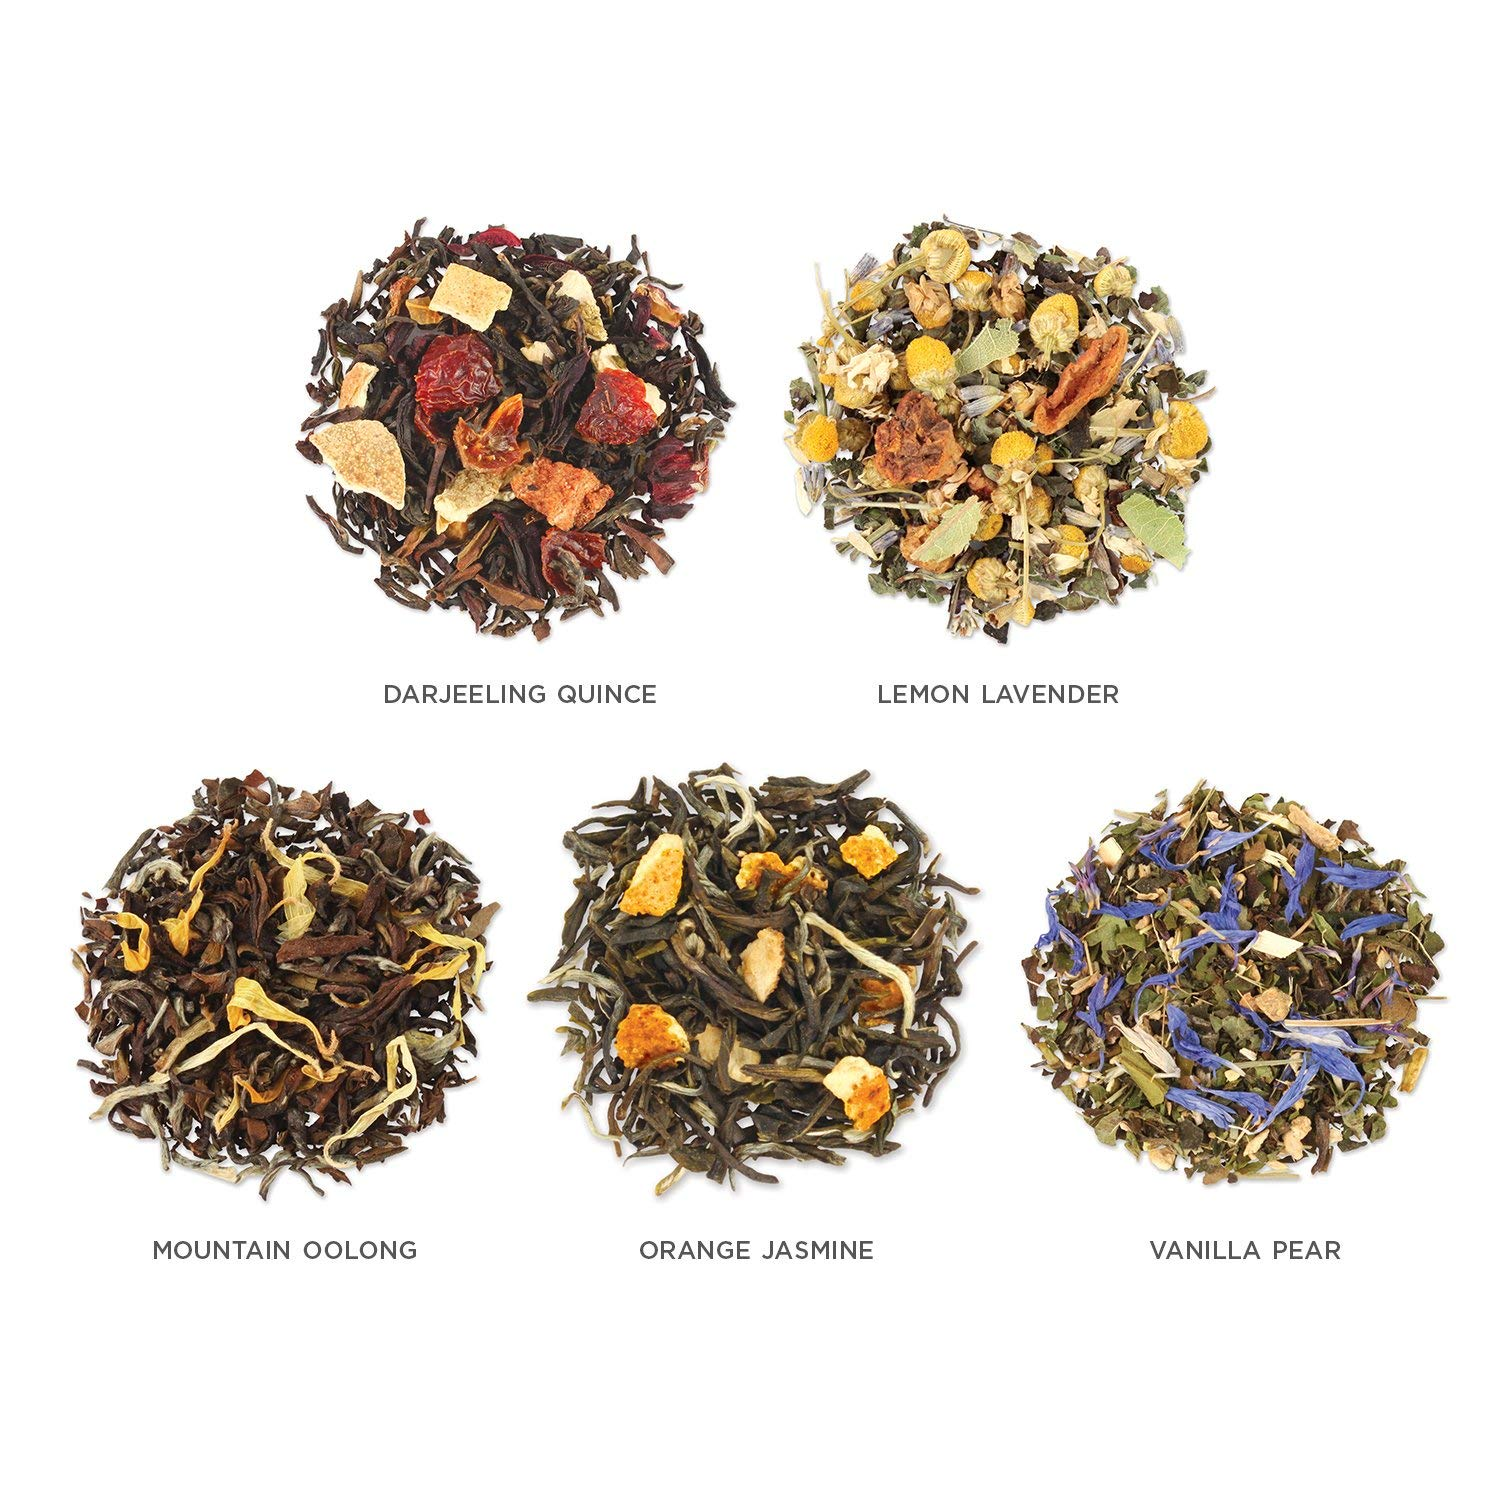 Tea Forte Single Steeps Lotus Organic Loose Leaf Tea Sampler, Assorted Tea Variety Pack, 15 Single Serve Pouches, Black Tea, Green Tea, Oolong Tea, White Tea, Herbal Tea